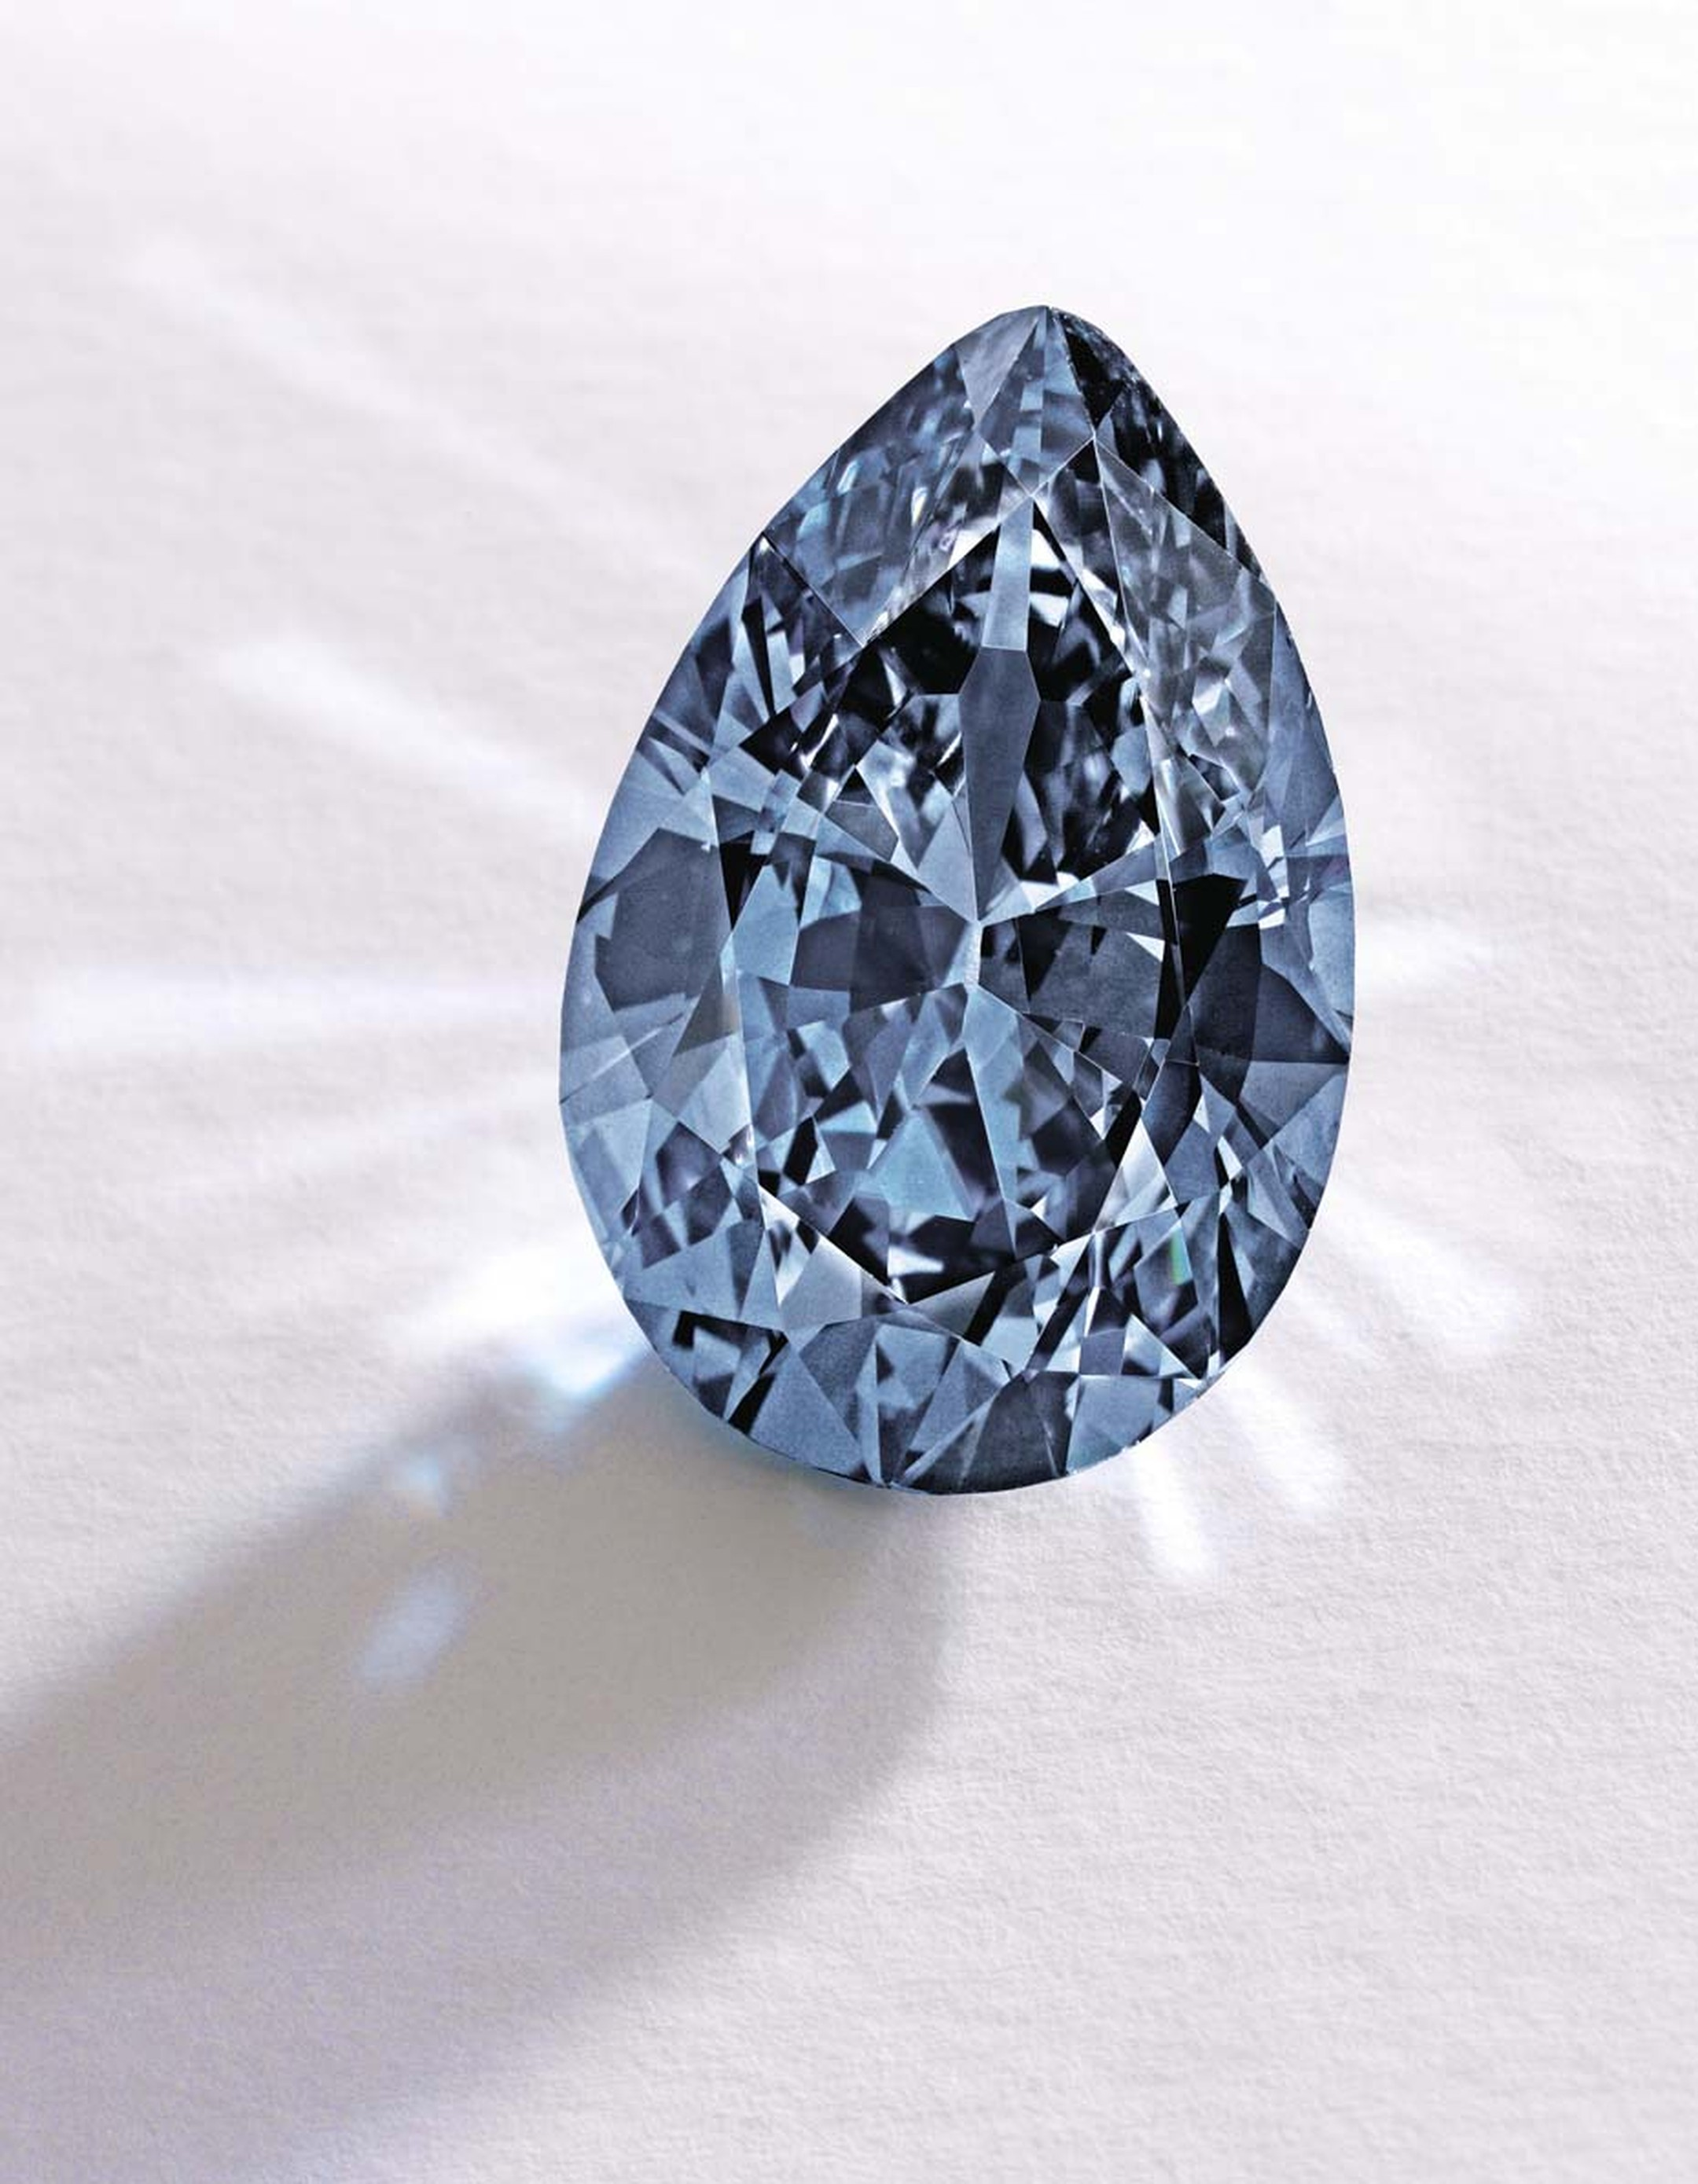 A rare 9.74ct Fancy Vivid Blue diamond, part of Sotheby's sale of Jewels & Objects of Vertu from the collection of Mrs Paul Mellon, broke two world records when it was sold for $32.6 million yesterday.